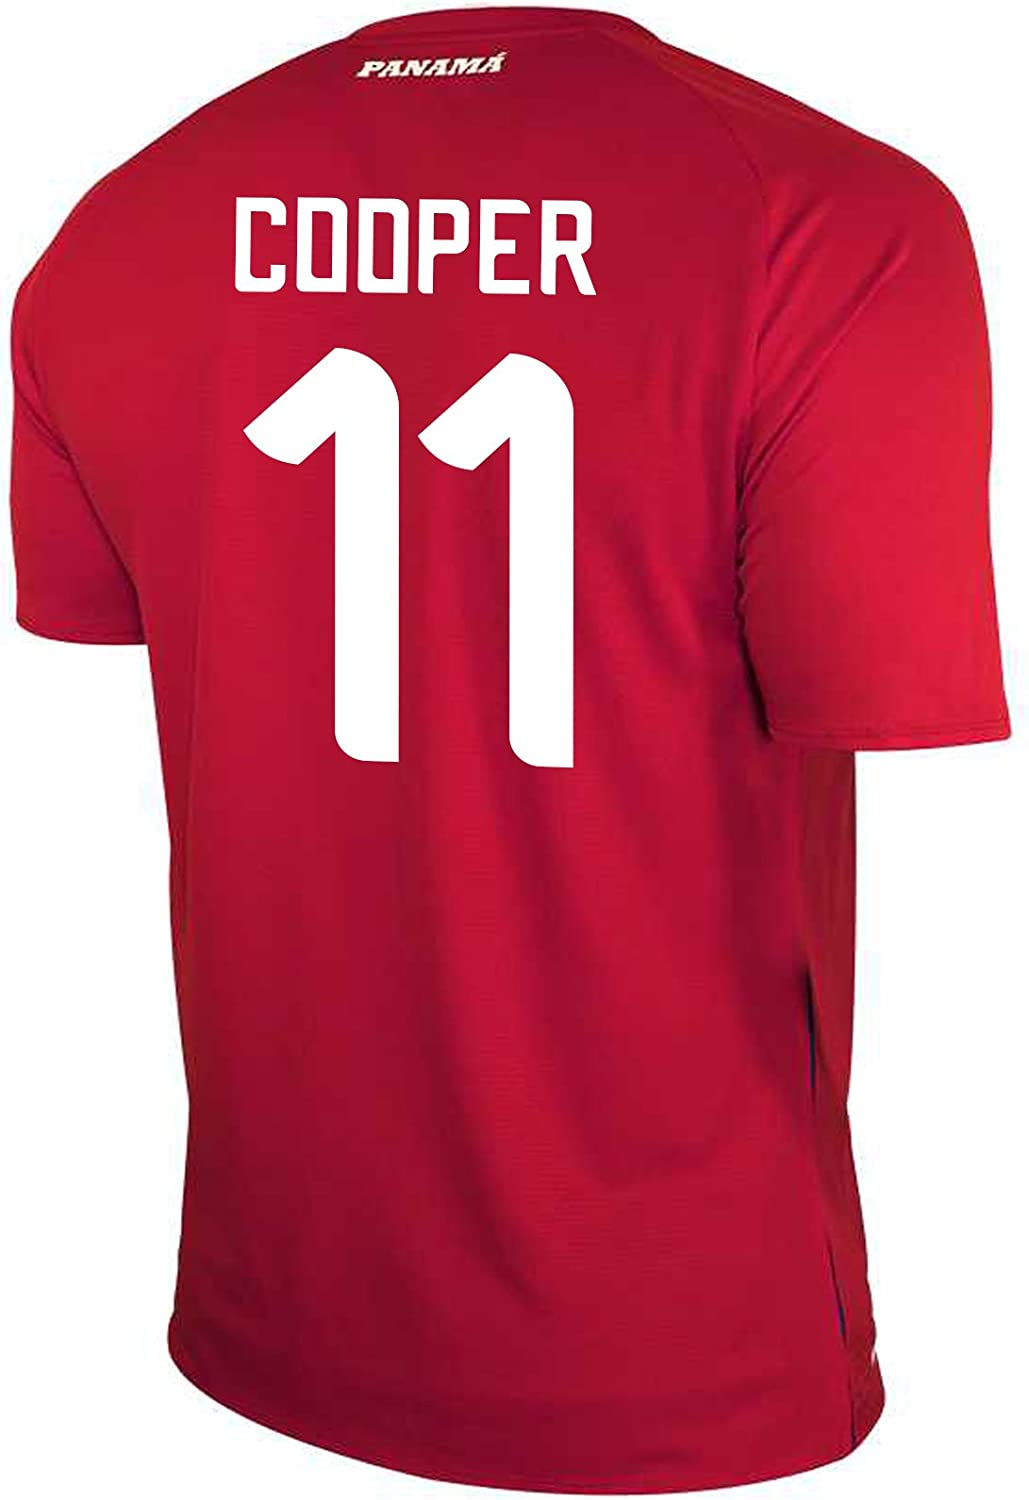 New Balance Cooper #11 Panama Home Soccer Men's Jersey FIFA World Cup Russia 2018